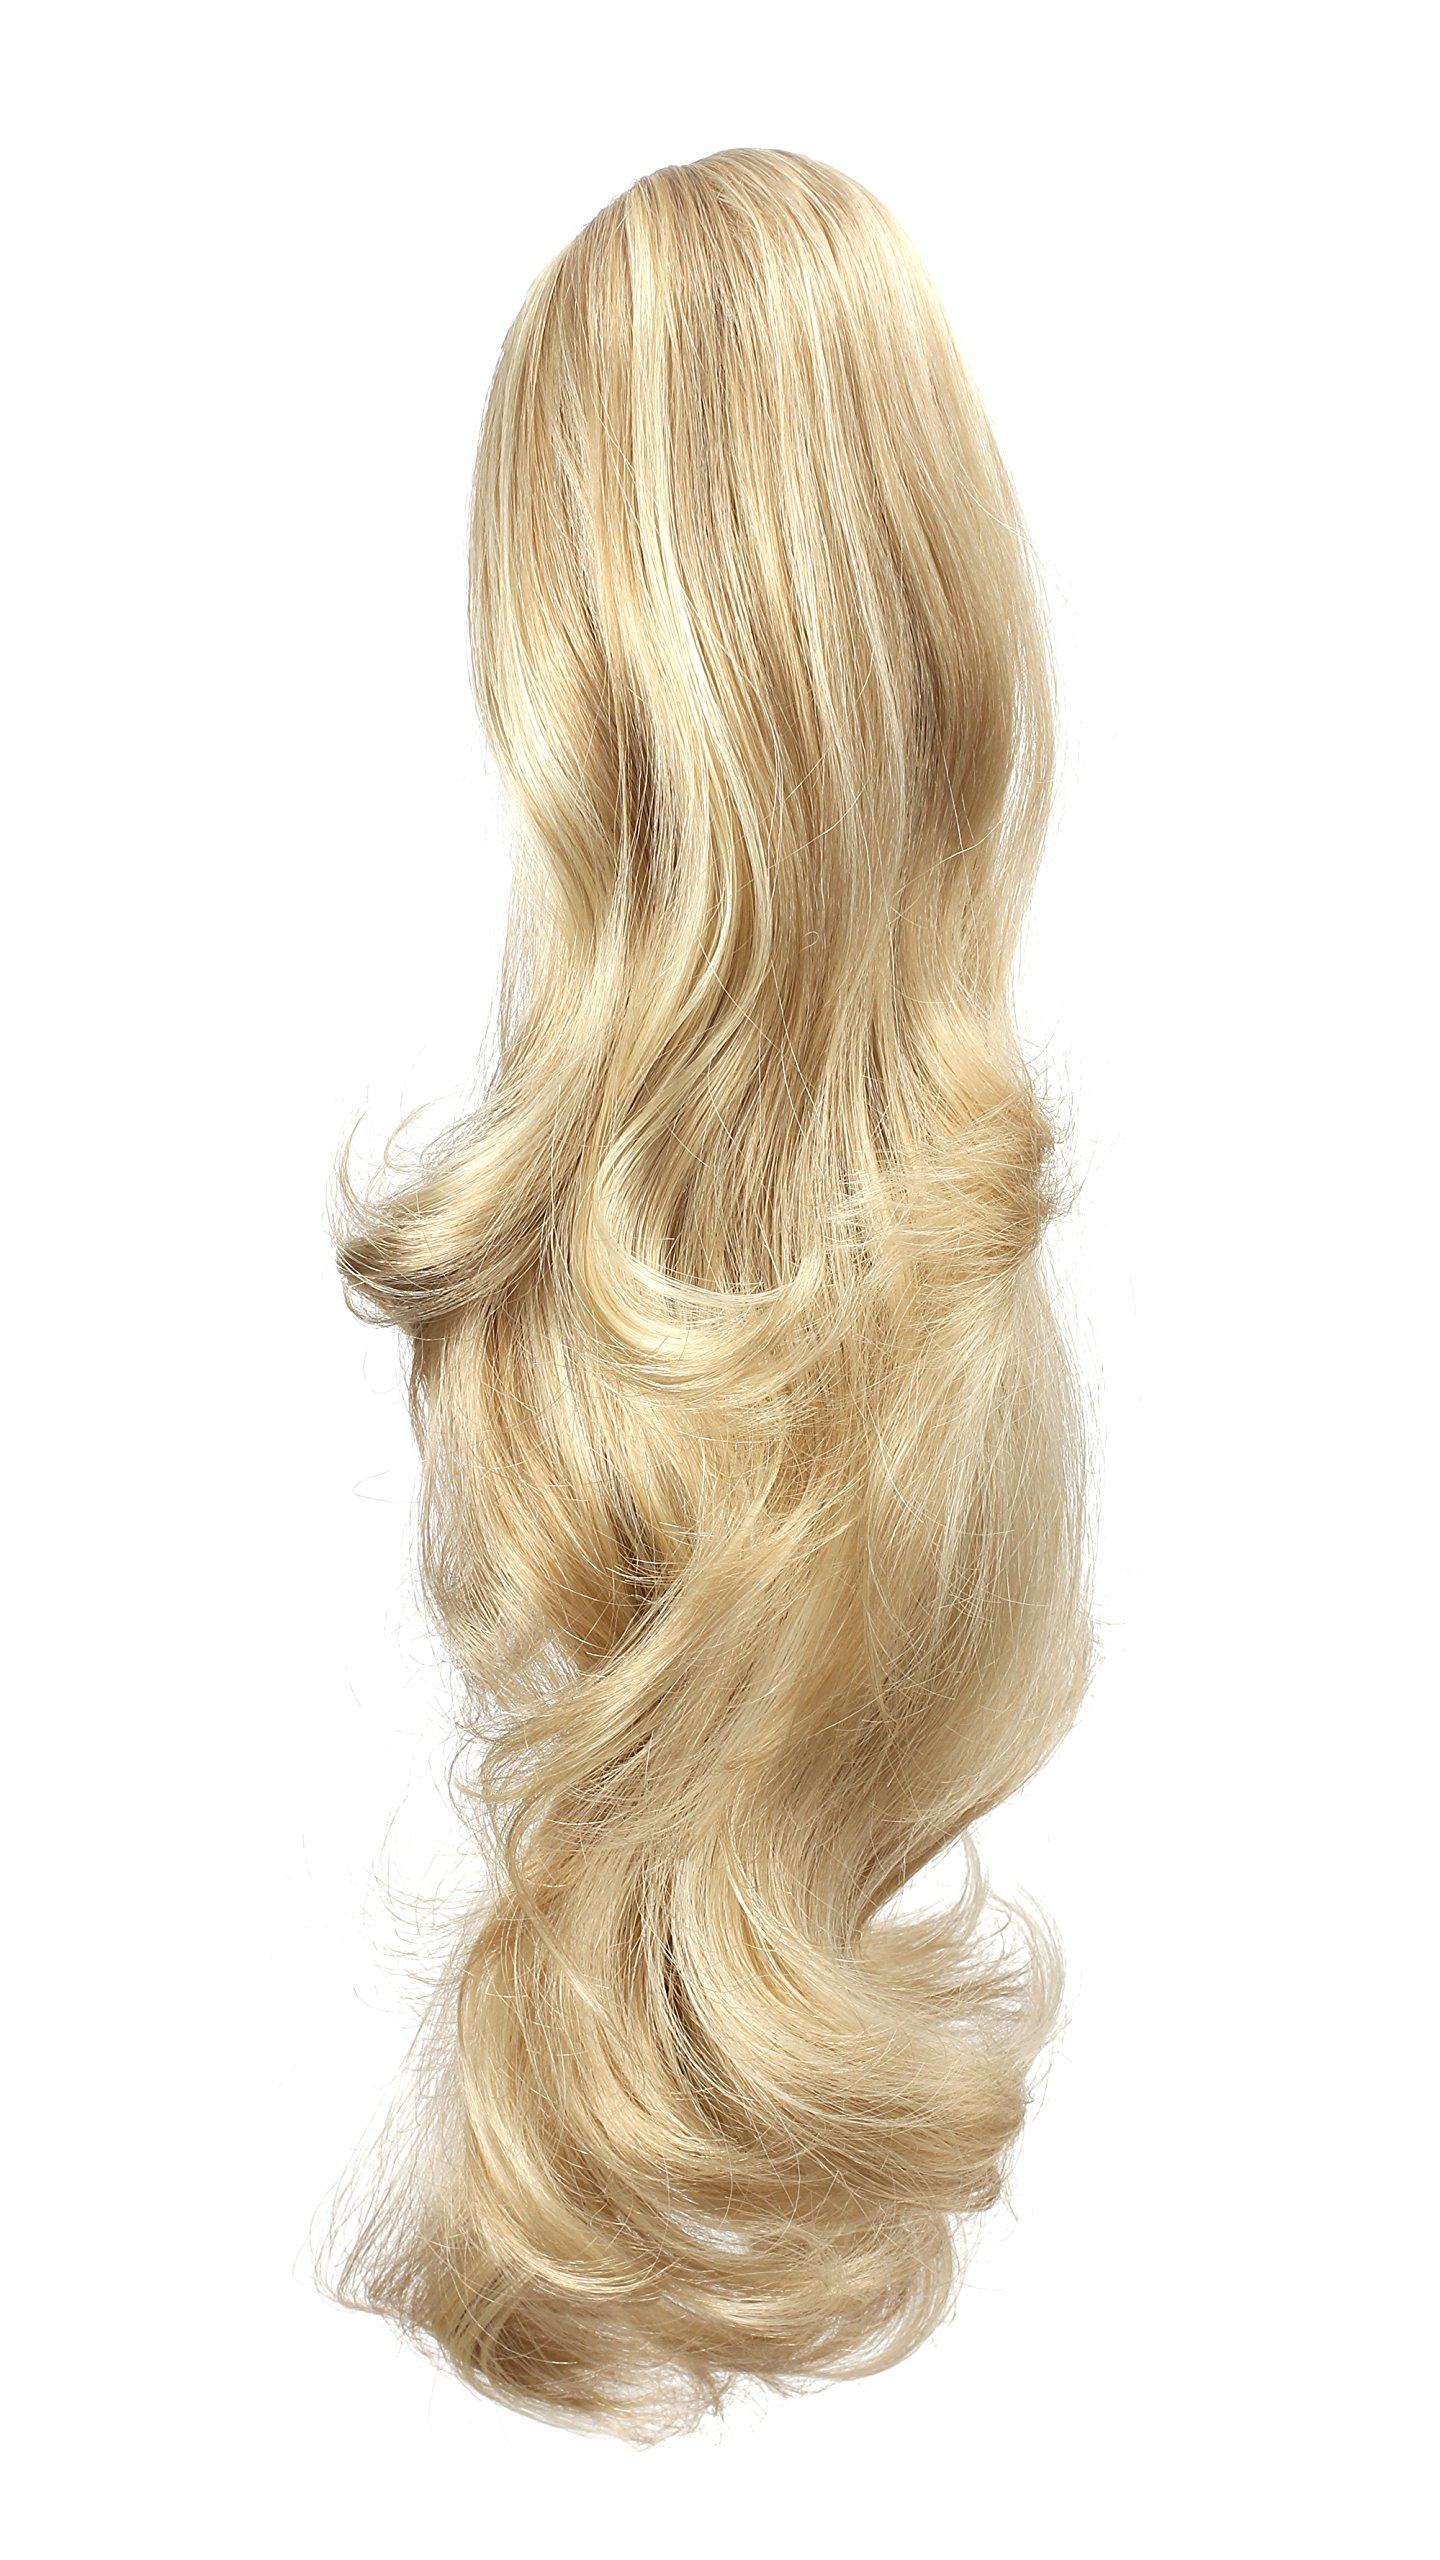 OneDor 20'' Curly Synthetic Clip In Claw Drawstring Ponytail Hair Extension Synthetic Hairpiece 190g with a jaw/claw clip (R1488H) by Onedor